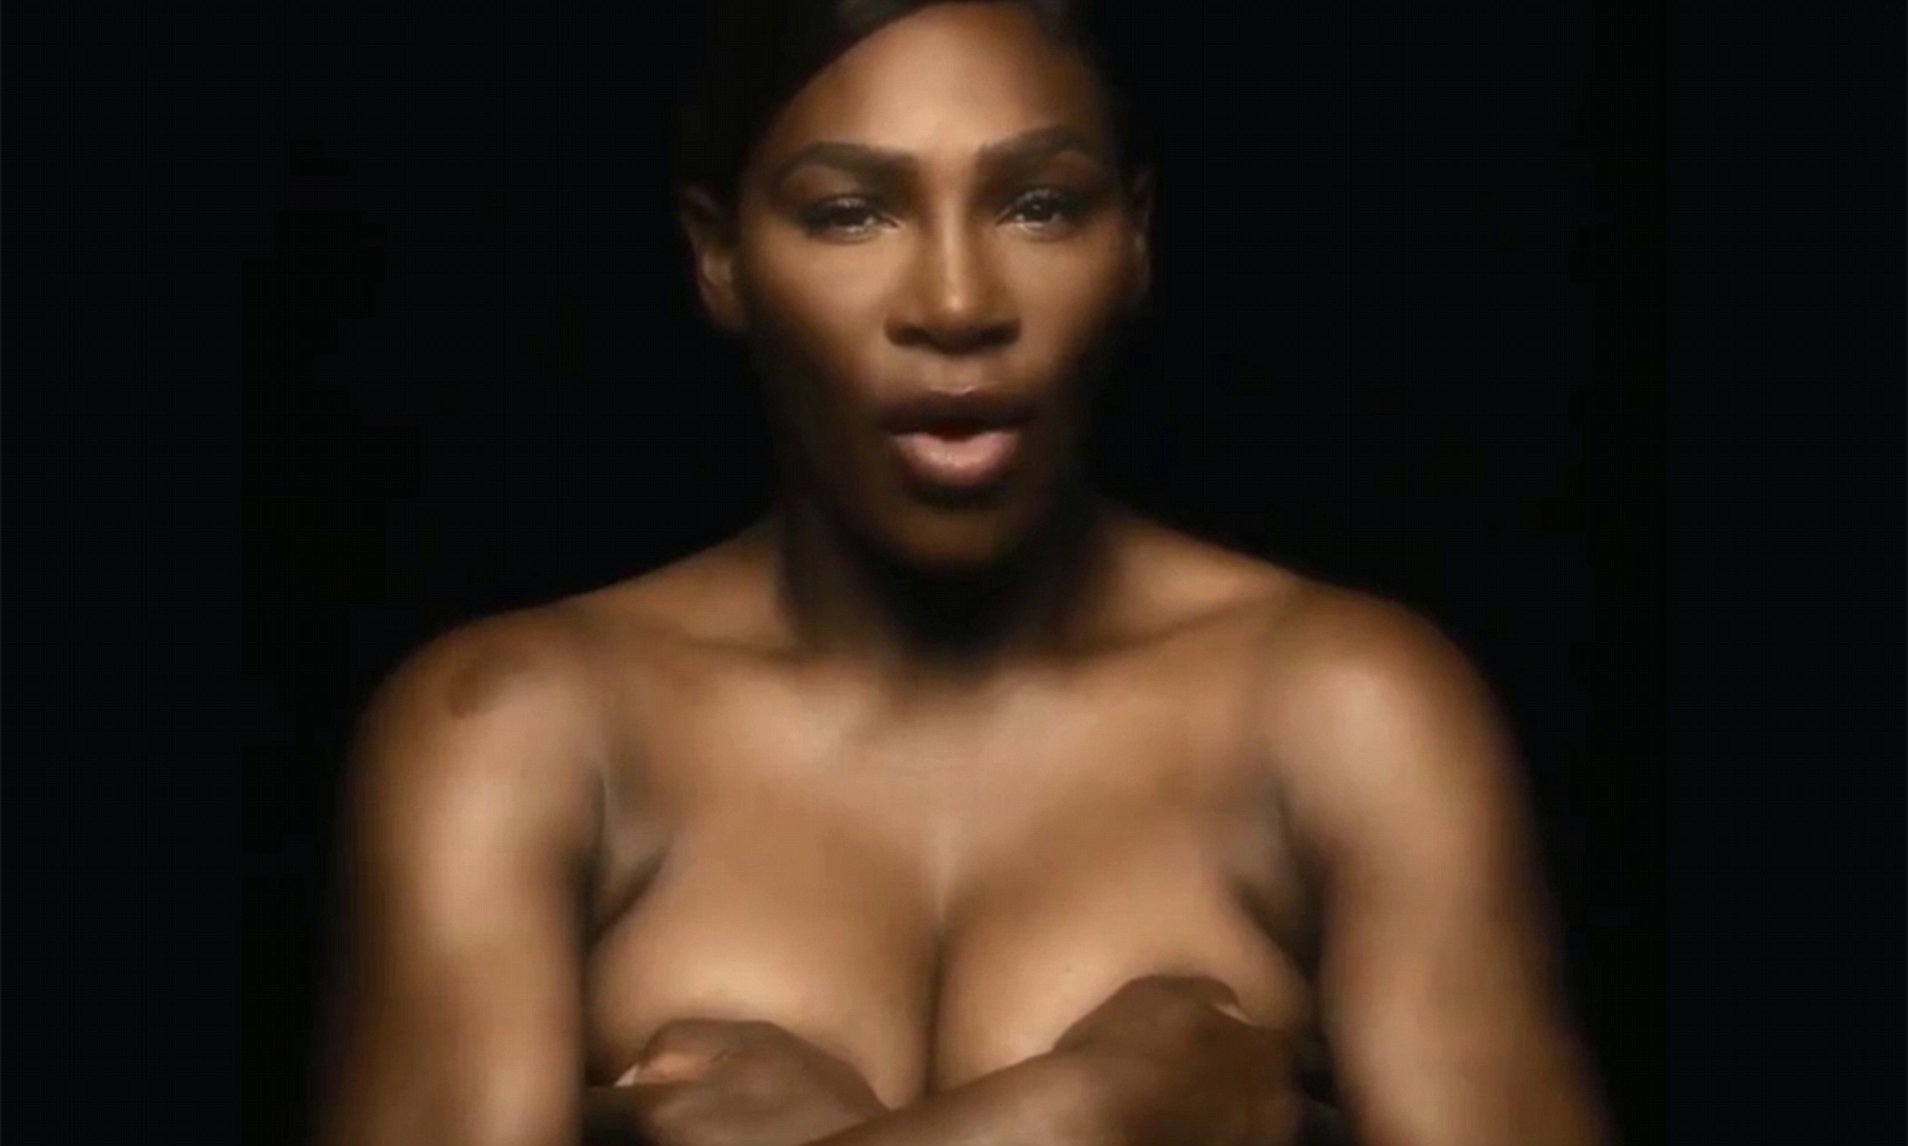 biggest and toples breast in nigeria